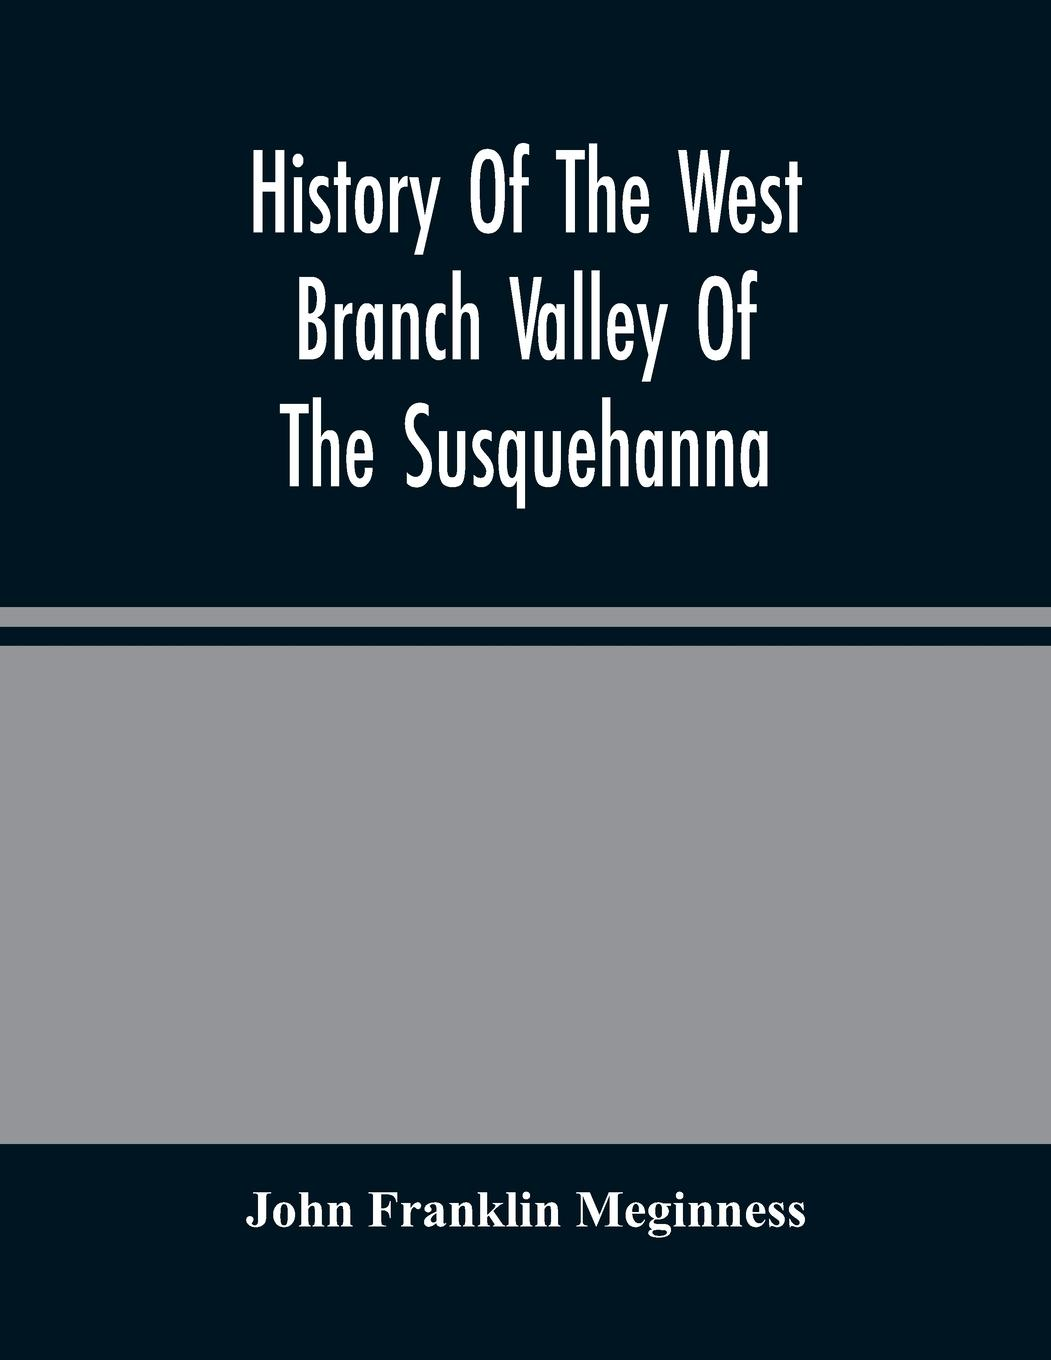 History Of The West Branch Valley Of The Susquehanna - Franklin Meginness, John